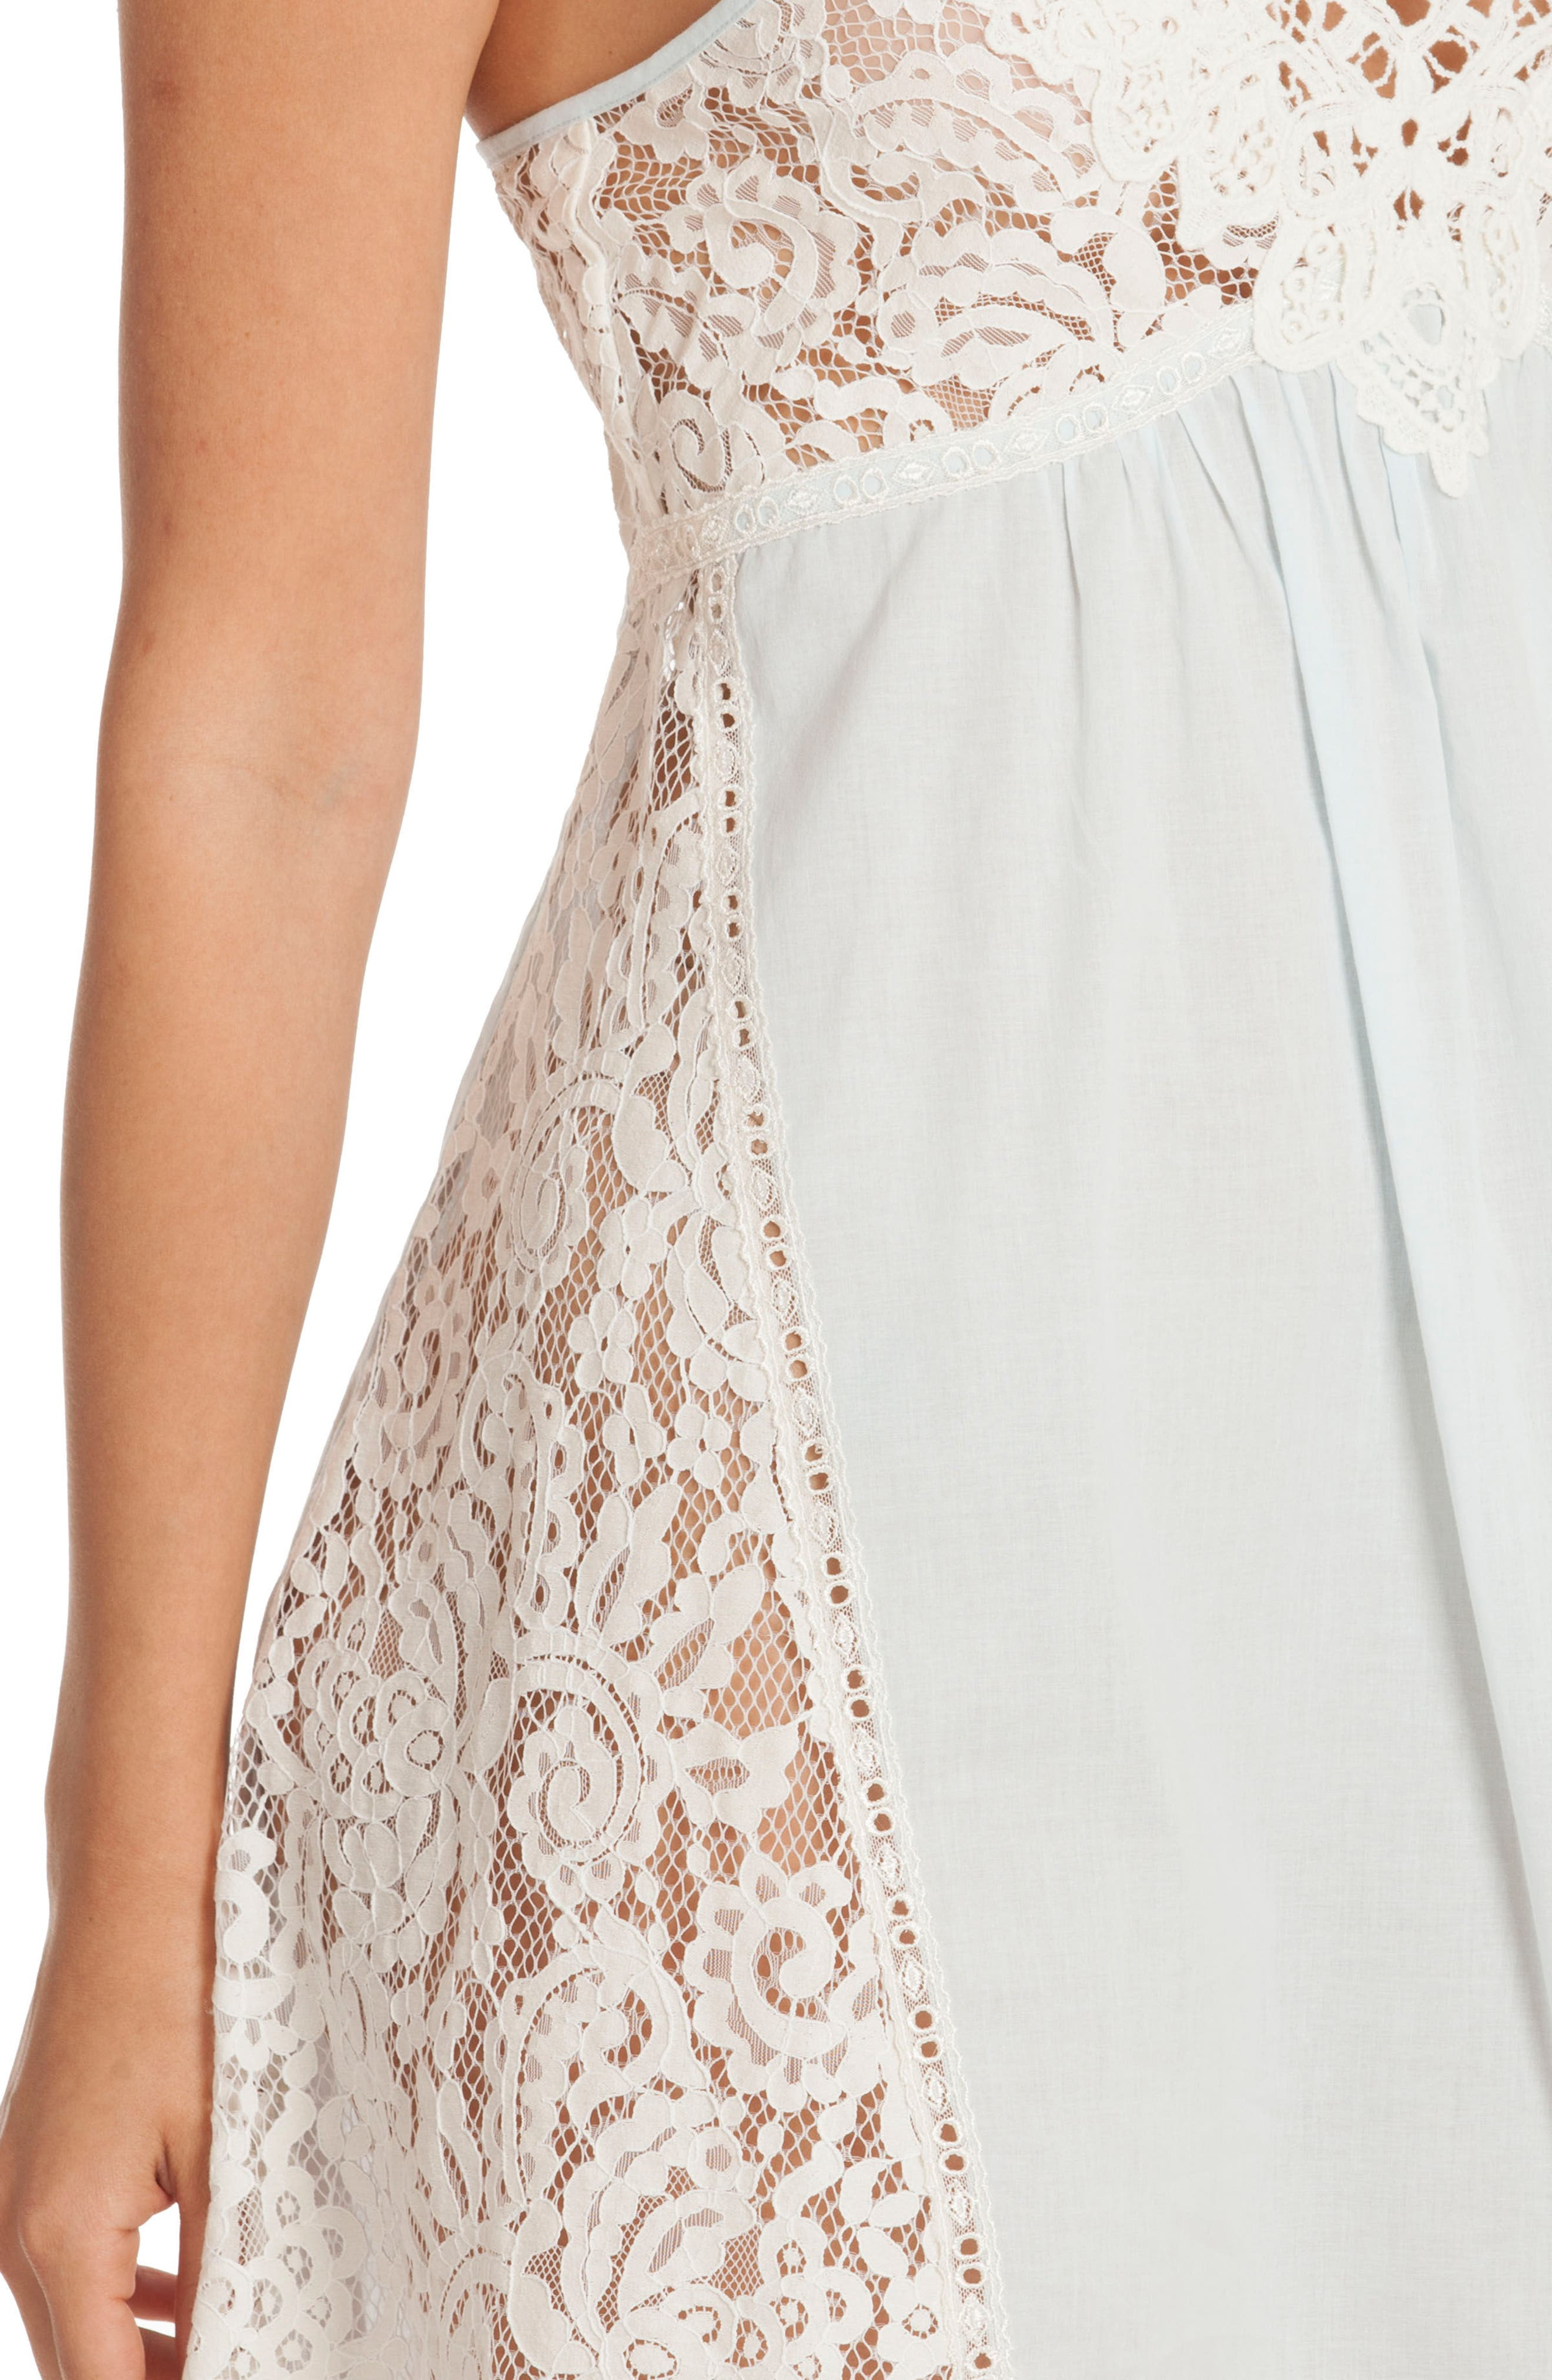 Lace Chemise,                             Alternate thumbnail 5, color,                             Skyfall/ Beige